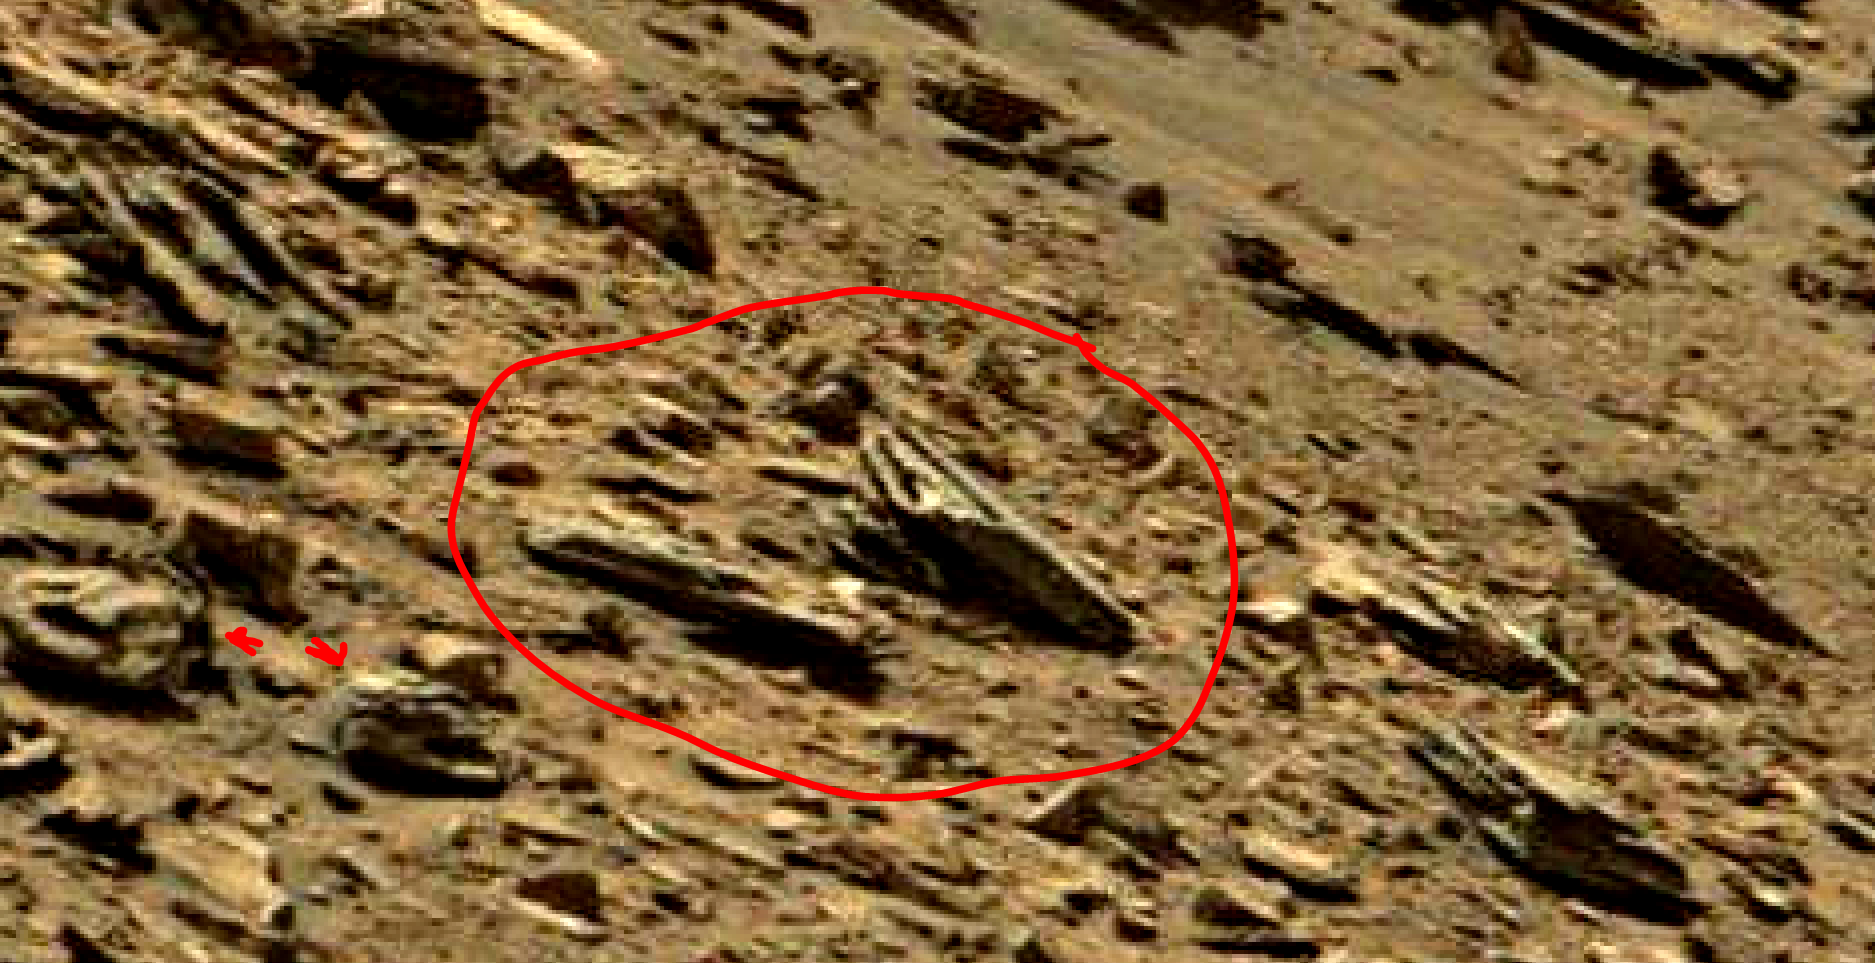 mars sol 1434 anomaly artifacts 7 was life on mars